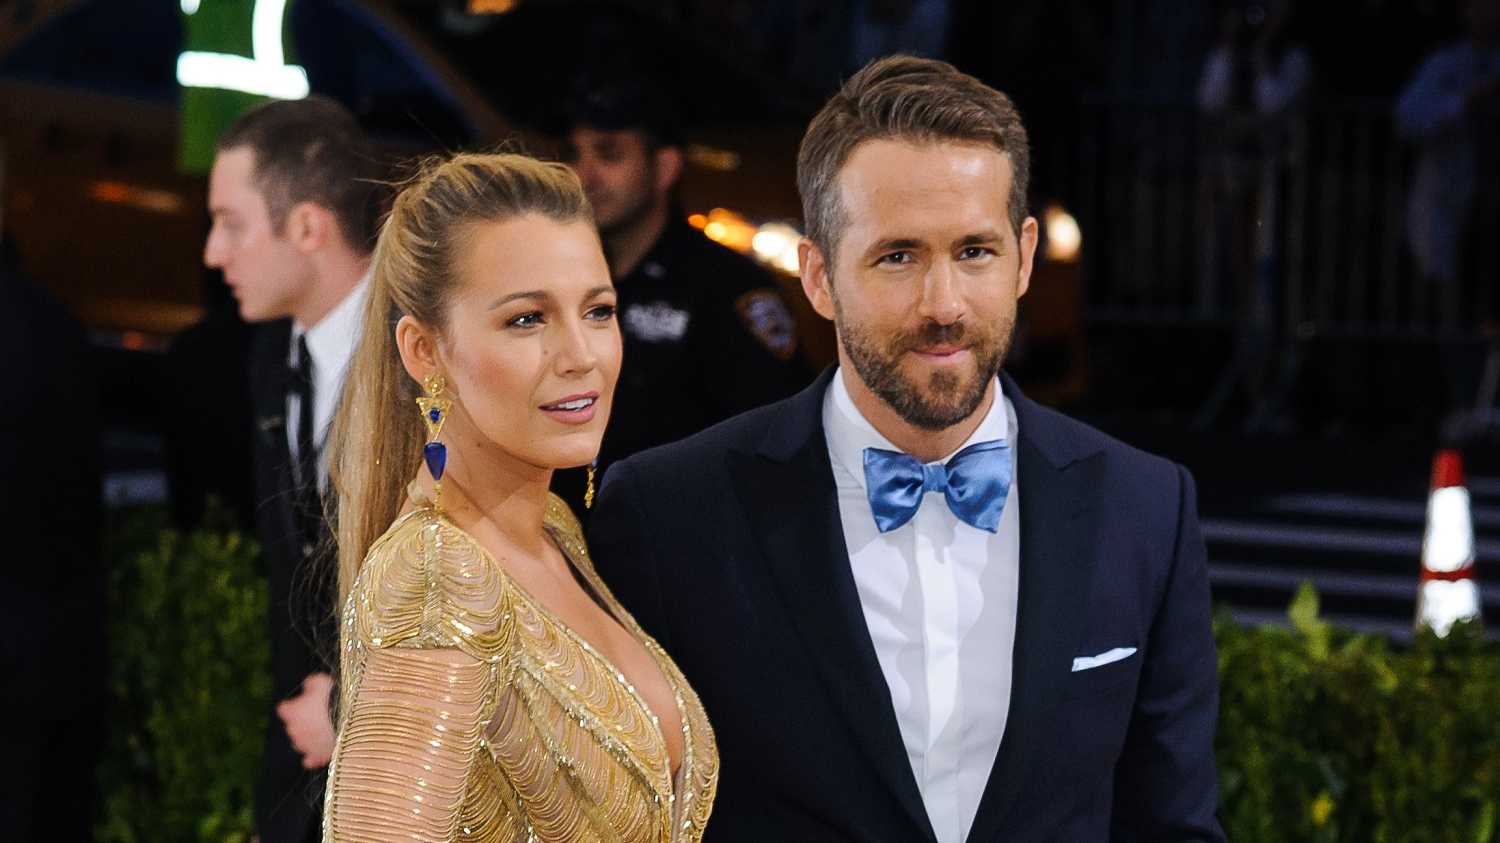 Ryan Reynolds Replies To Blake Lively After She Rinses His S**t Attempt At Baking